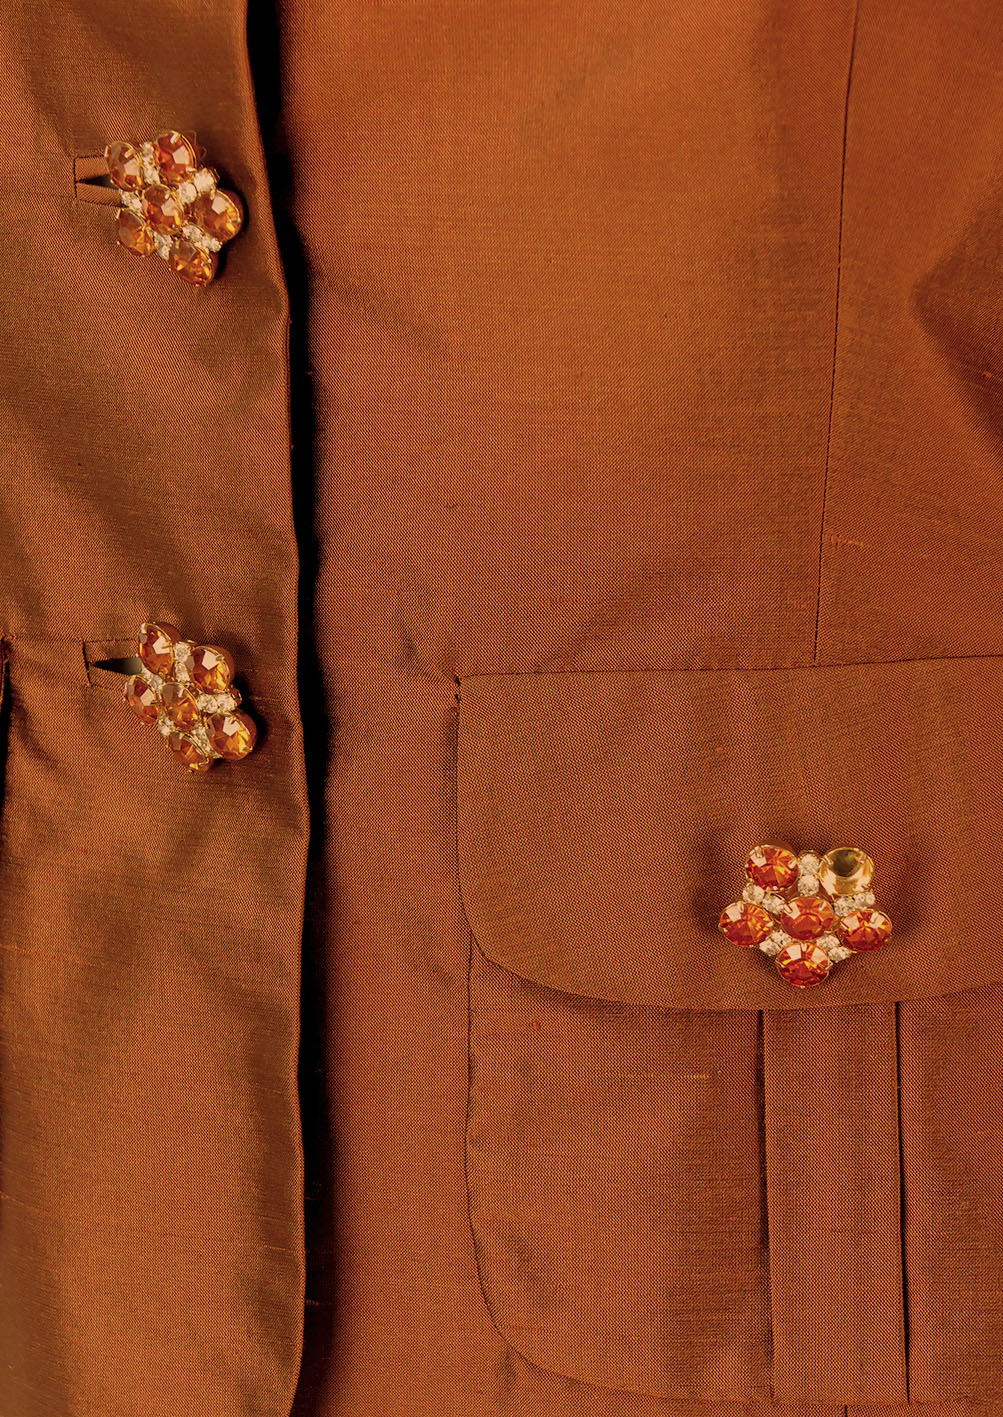 0c2a728e93 Luisa Spagnoli Pure Silk Brown Jacket with Jewelled Buttons - S/M. Touch to  zoom